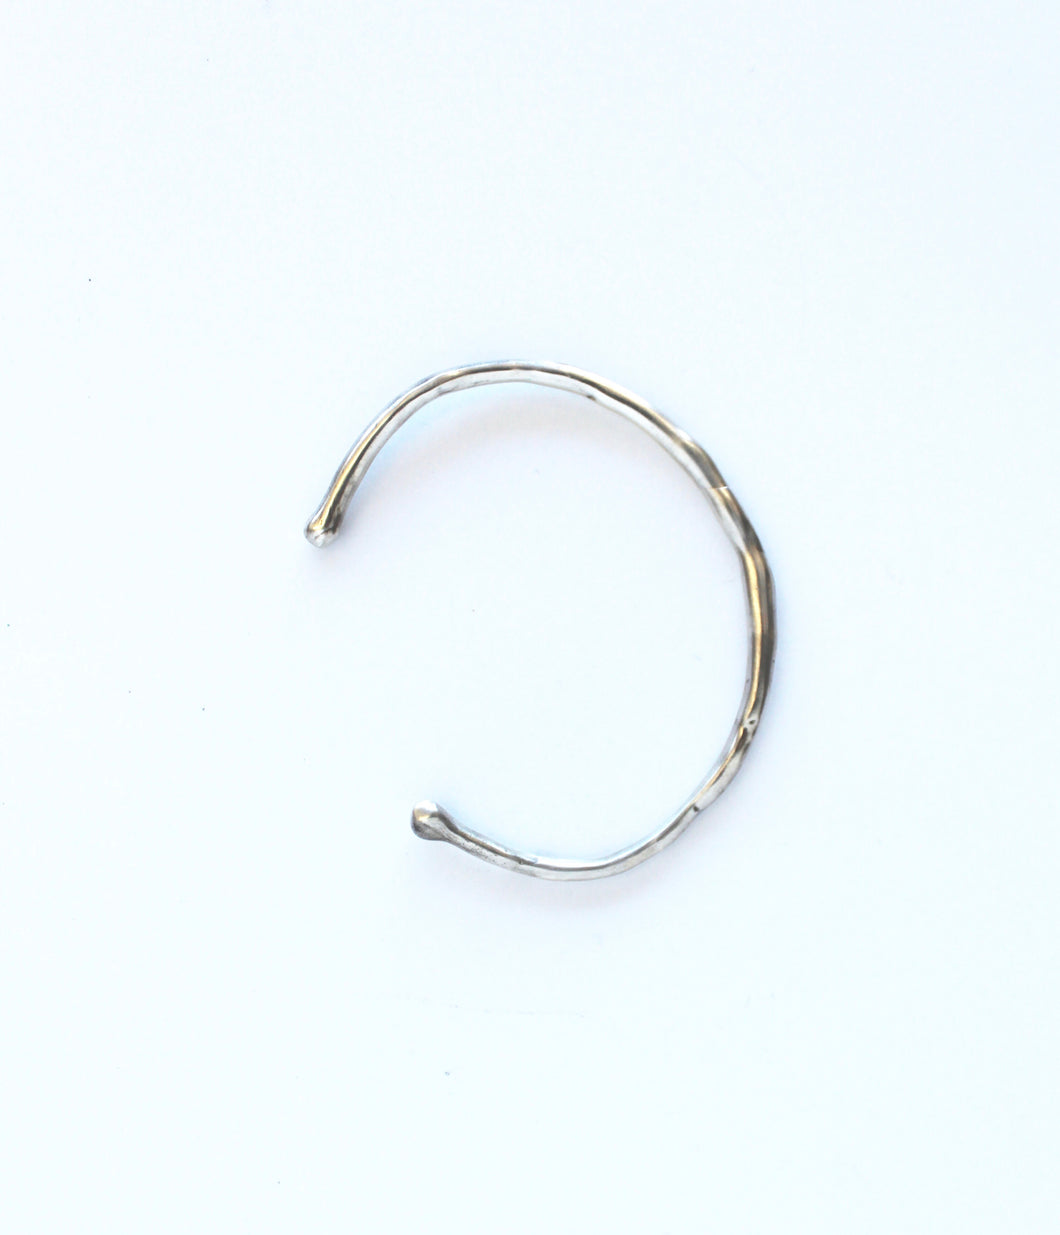 metals :: sterling silver bracelet - thin